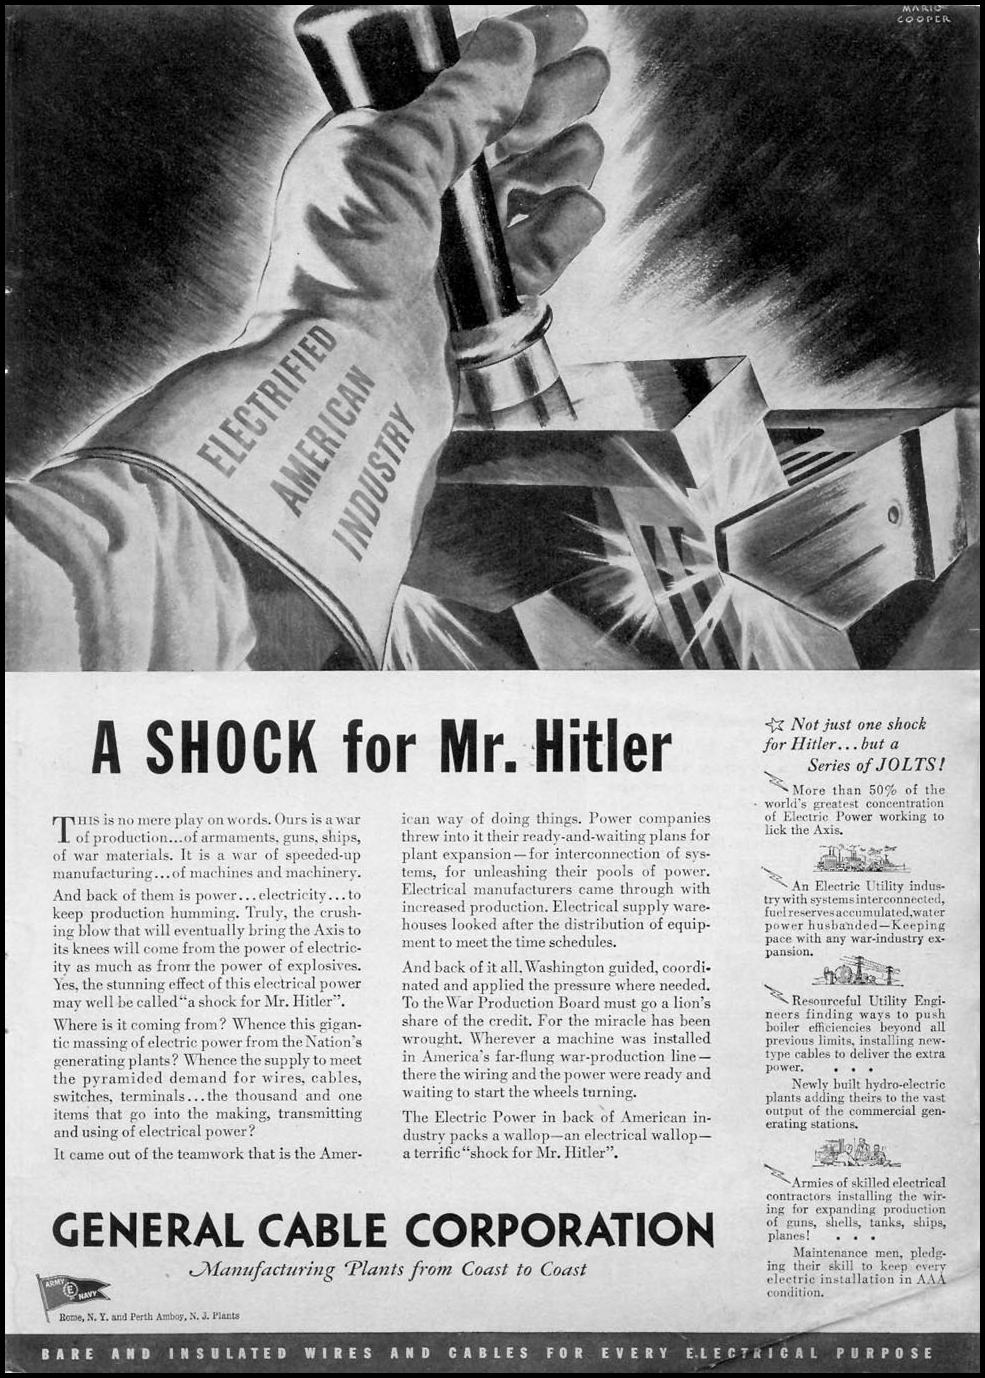 A SHOCK FOR MR. HITLER